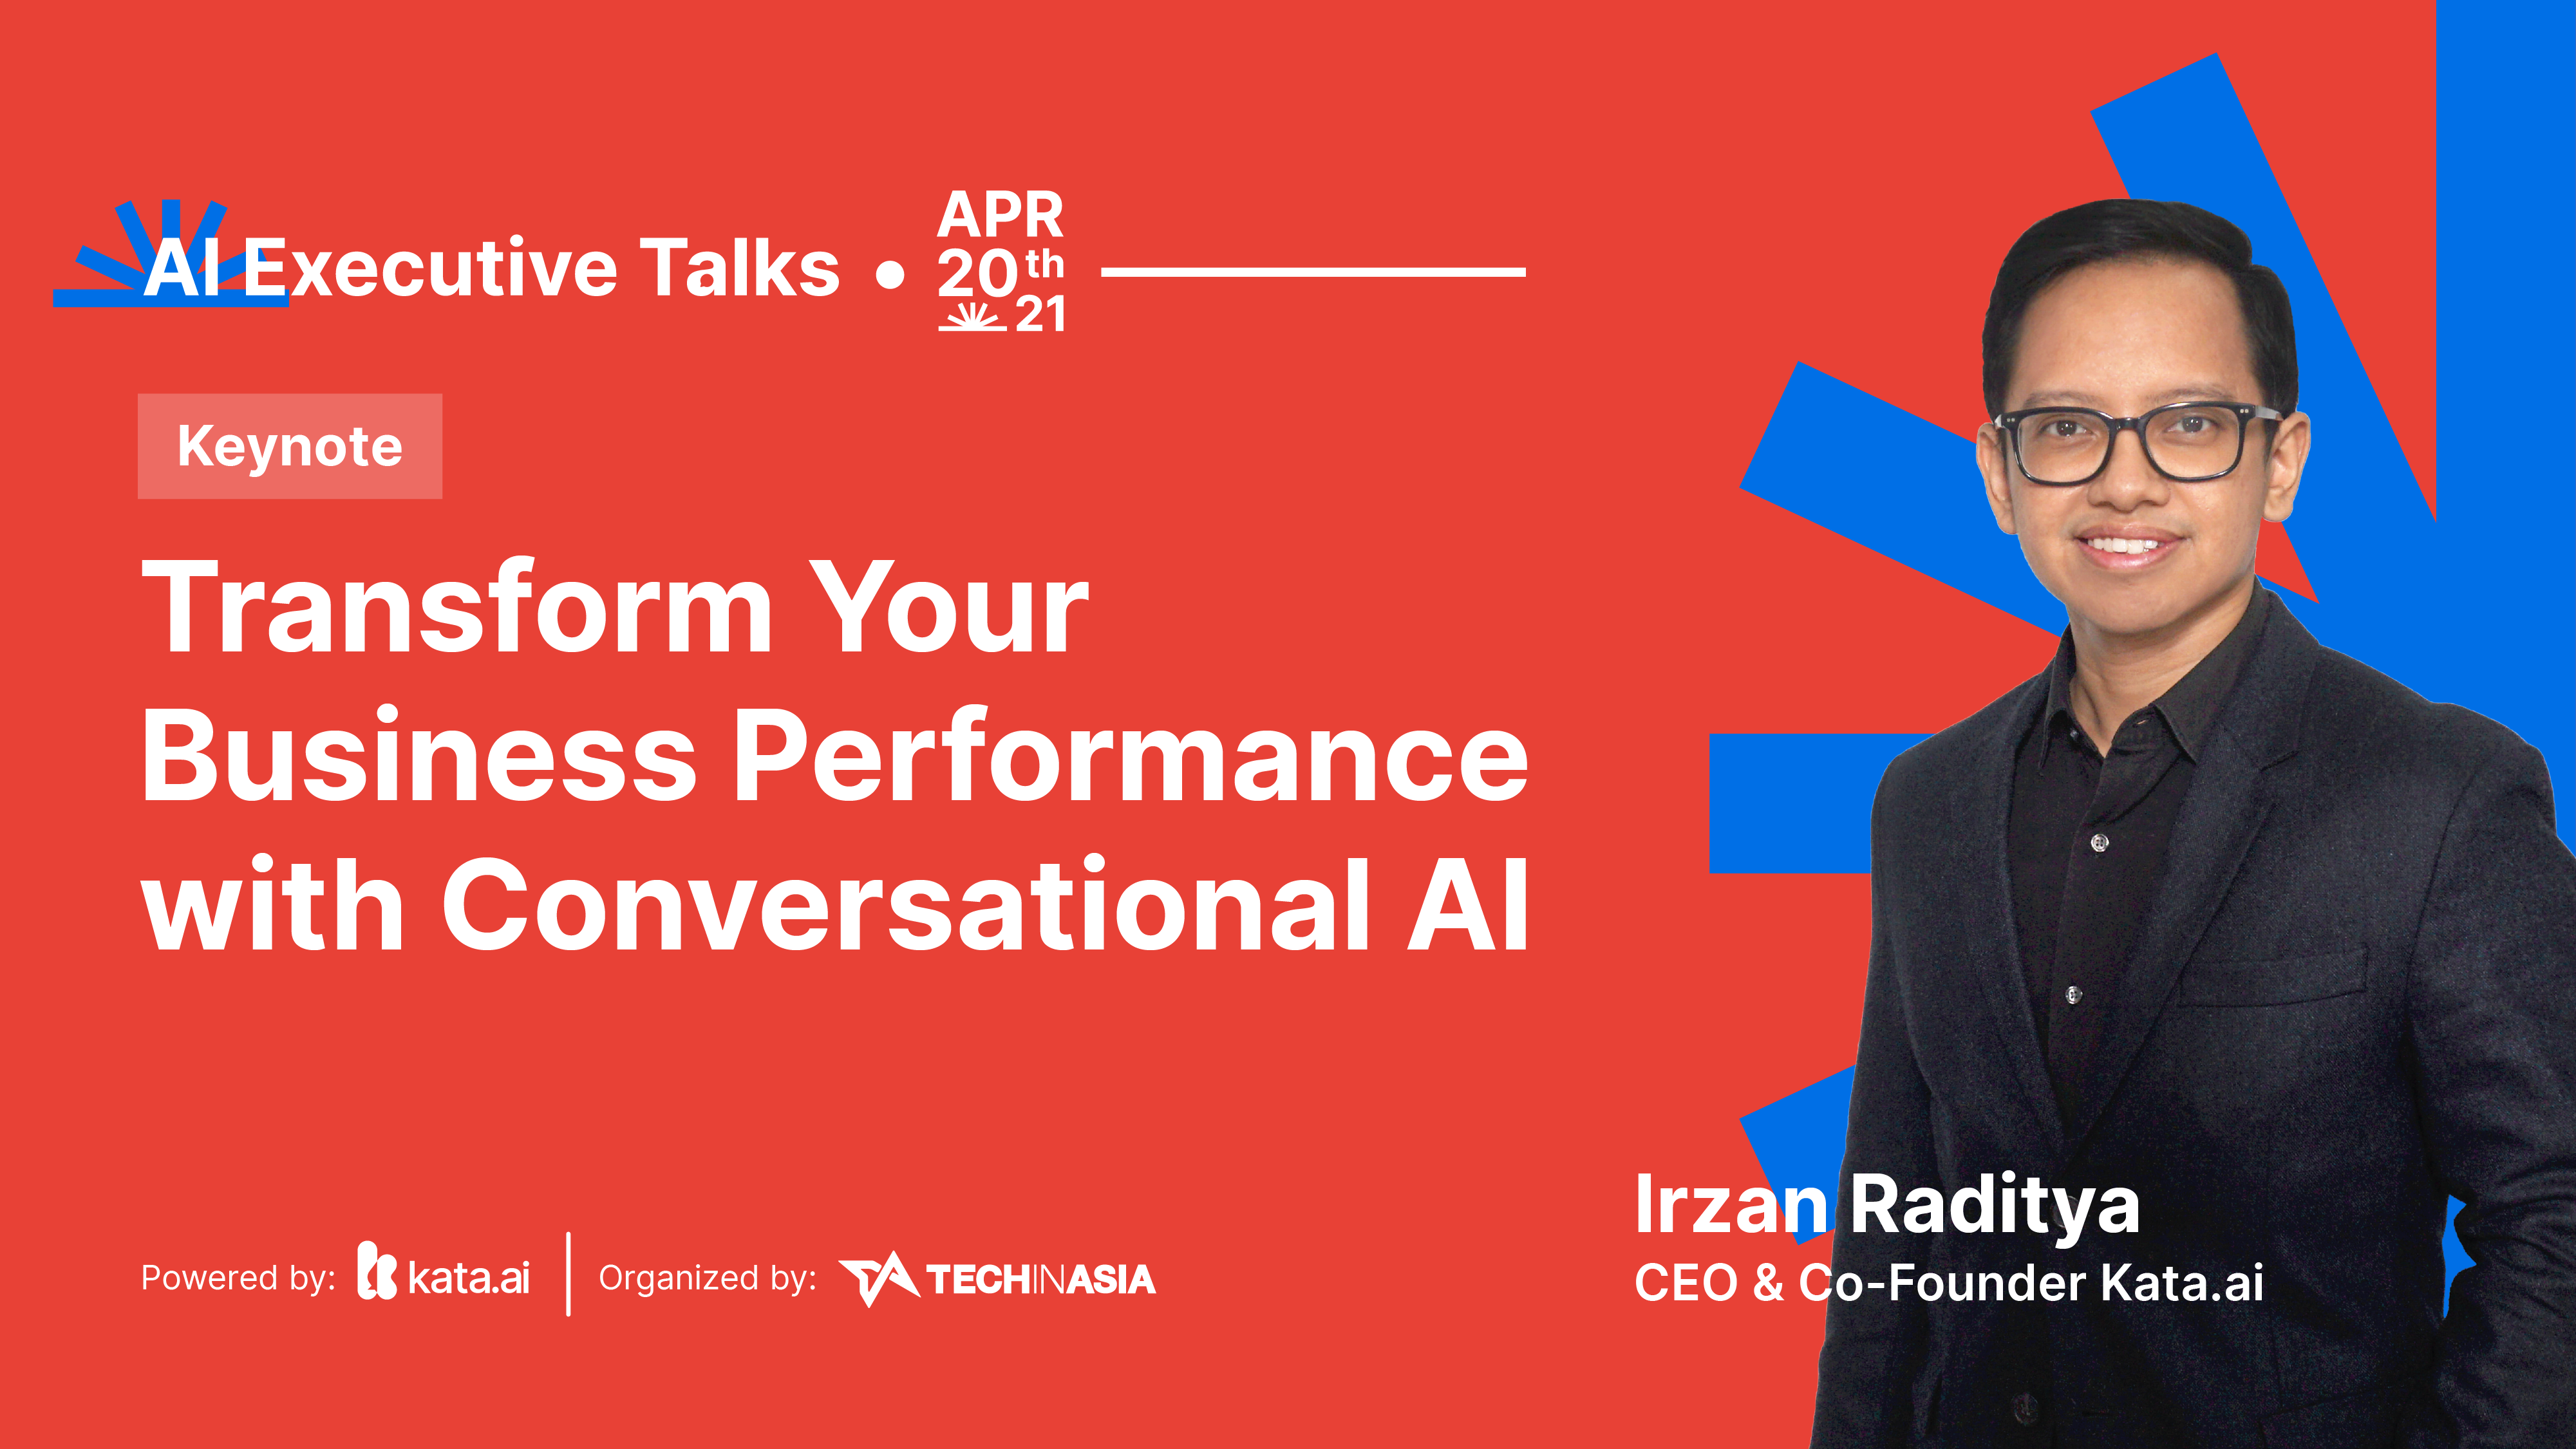 At Kata.ai's AI Executive Talks event, CEO and Co-Founder Irzan Raditya discussed how companies can transform their business performance performance with conversational AI.